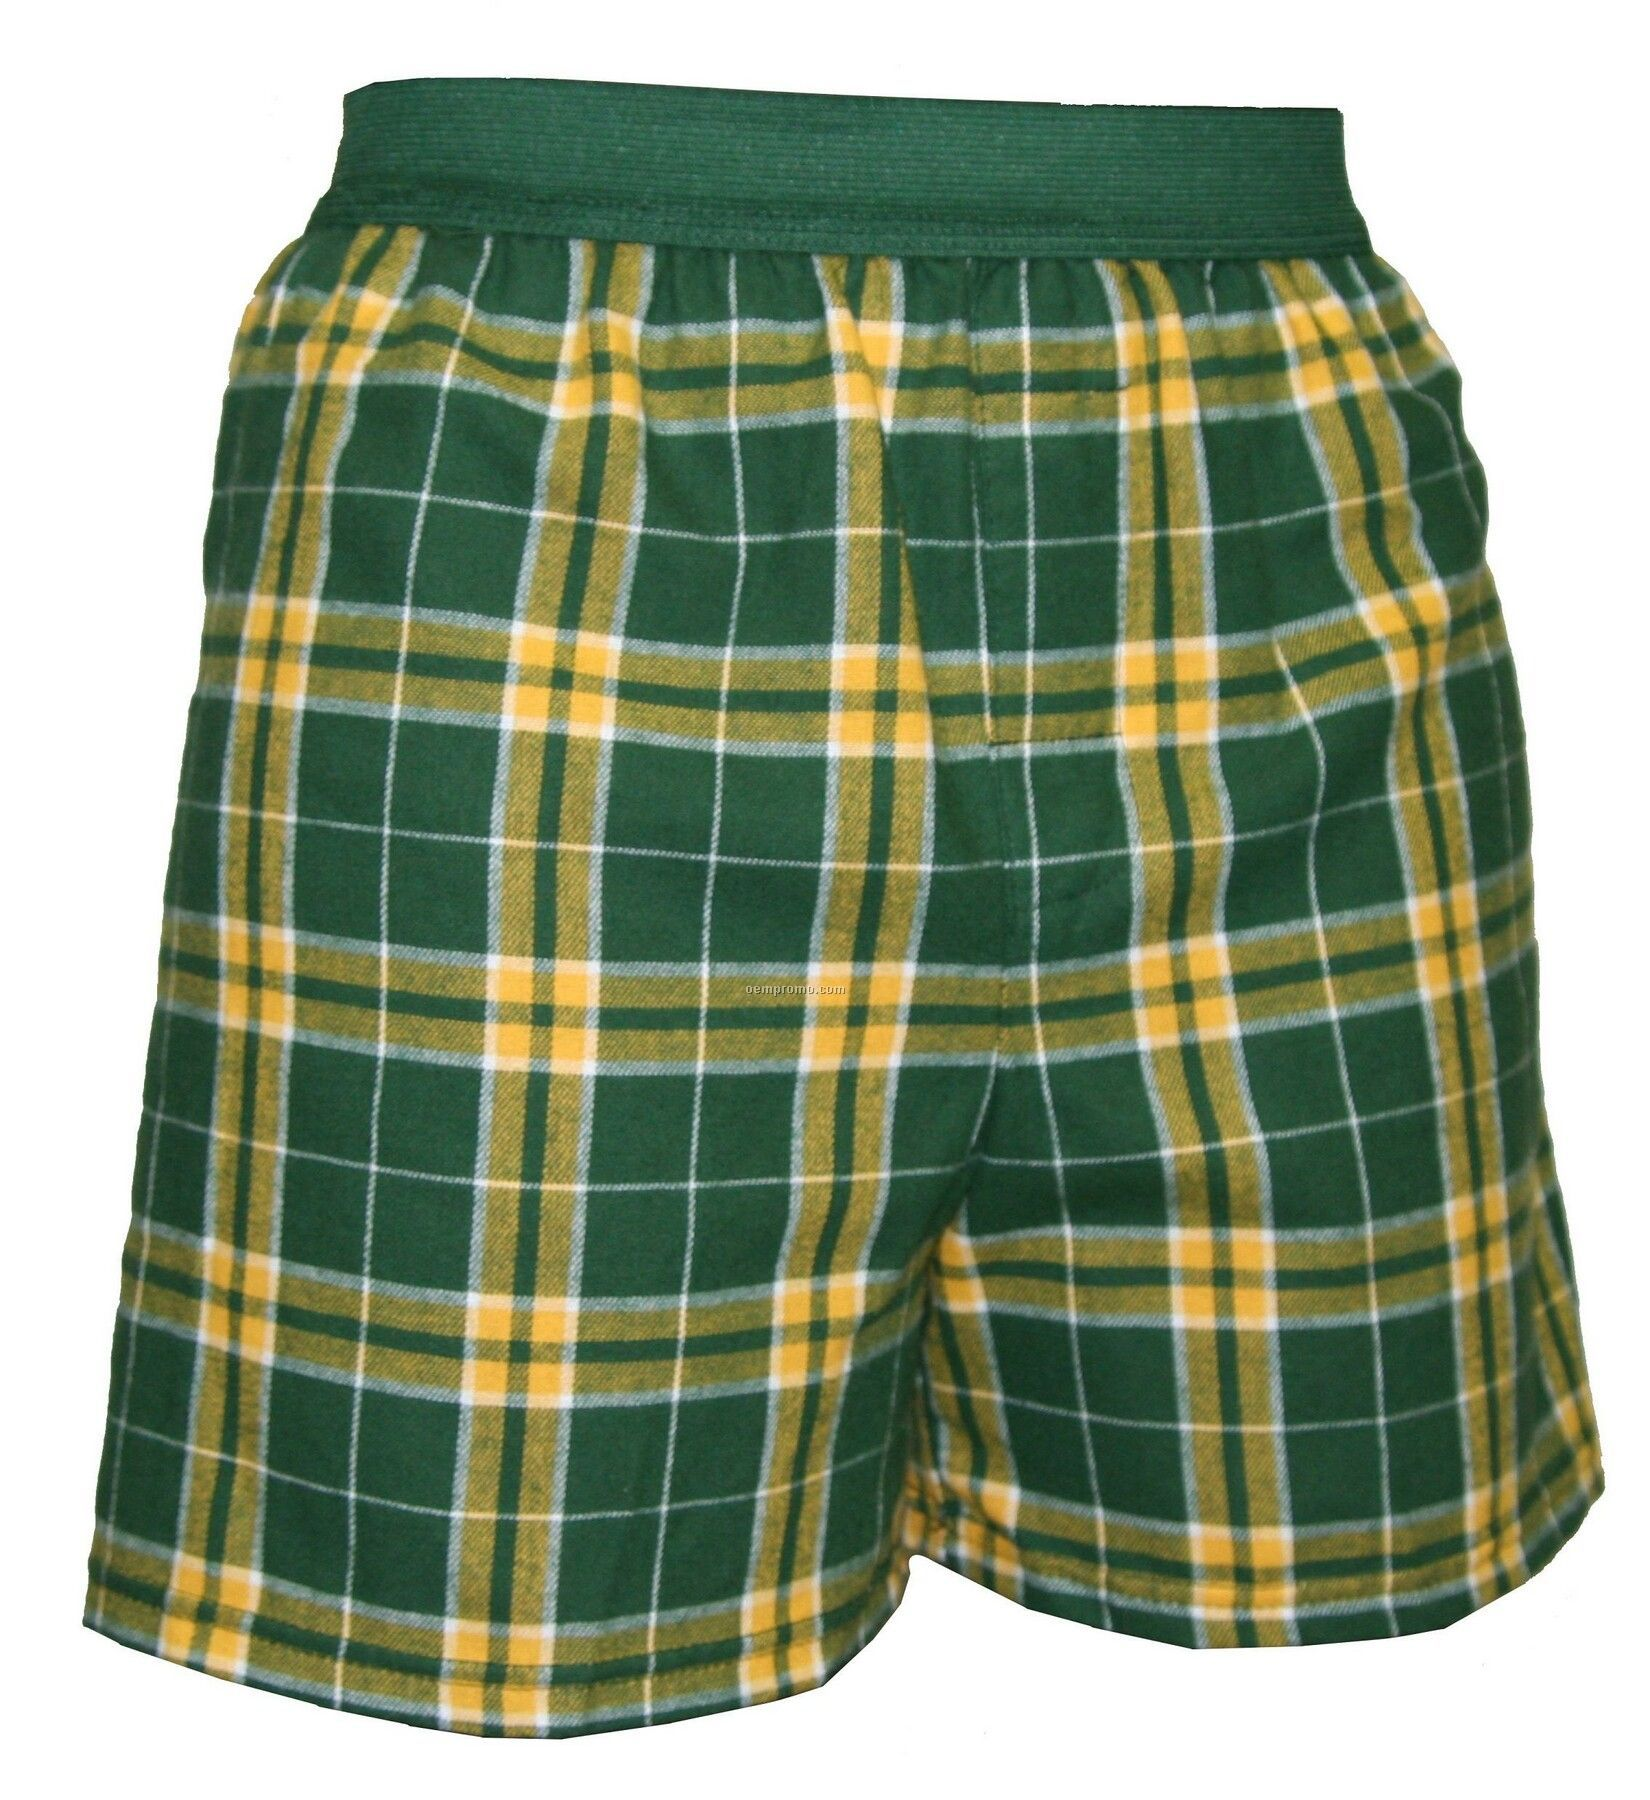 Youth Green/Gold Plaid Classic Boxer Short